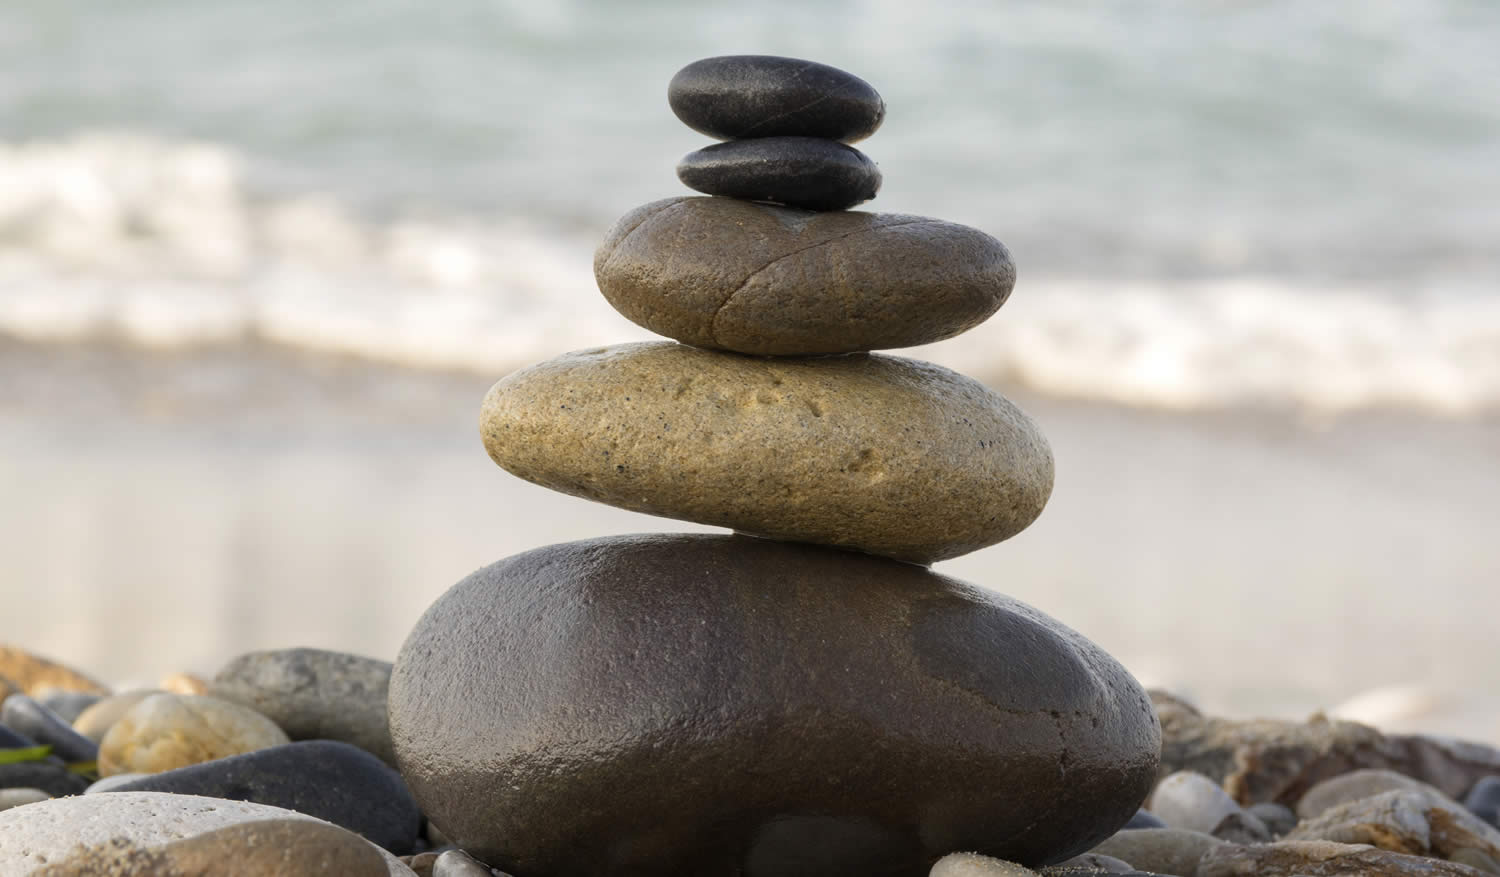 smoothed stones stacked atop one another, at the beach, a symbol of alignment, balance and peacefulness